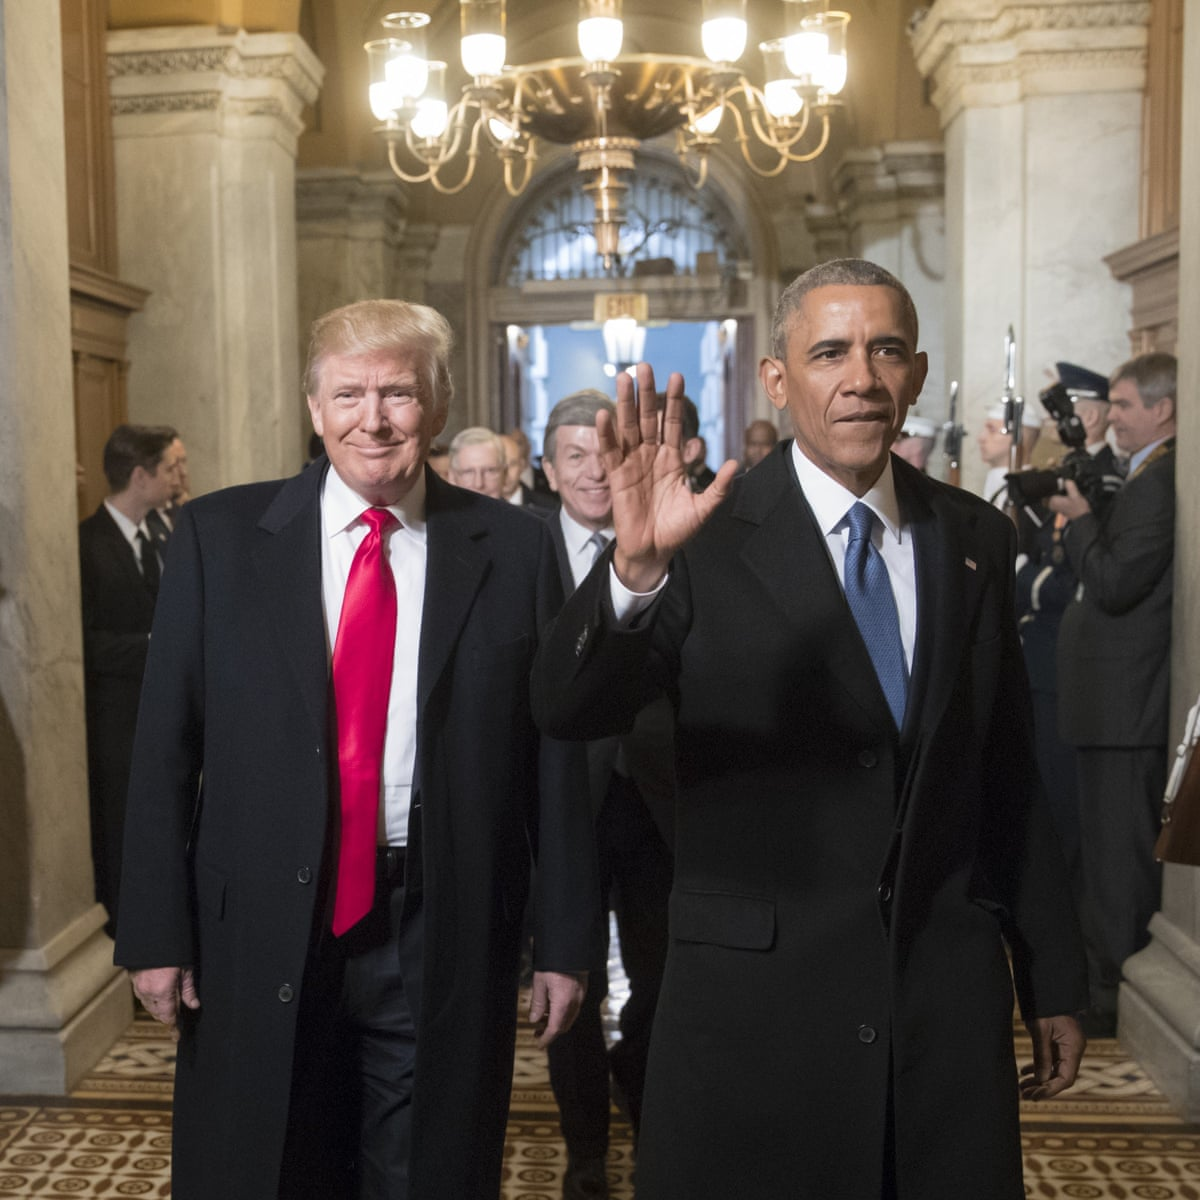 It Eats Him Alive Inside Trump S Latest Attack Shows Endless Obsession With Obama Donald Trump The Guardian Which presidents are still living